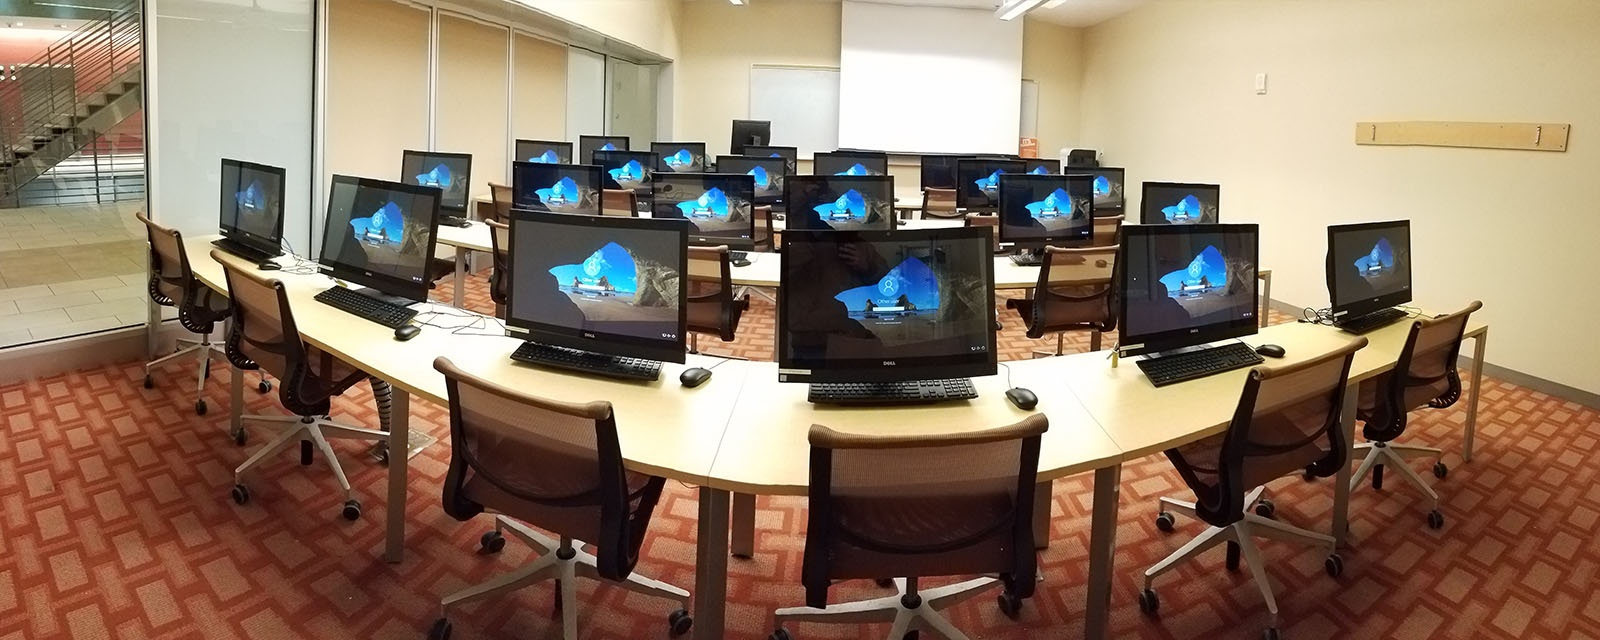 Panorama of room from students perspective. Fixed Teaching Station on left. 4 rows of computers with mobile chairs.